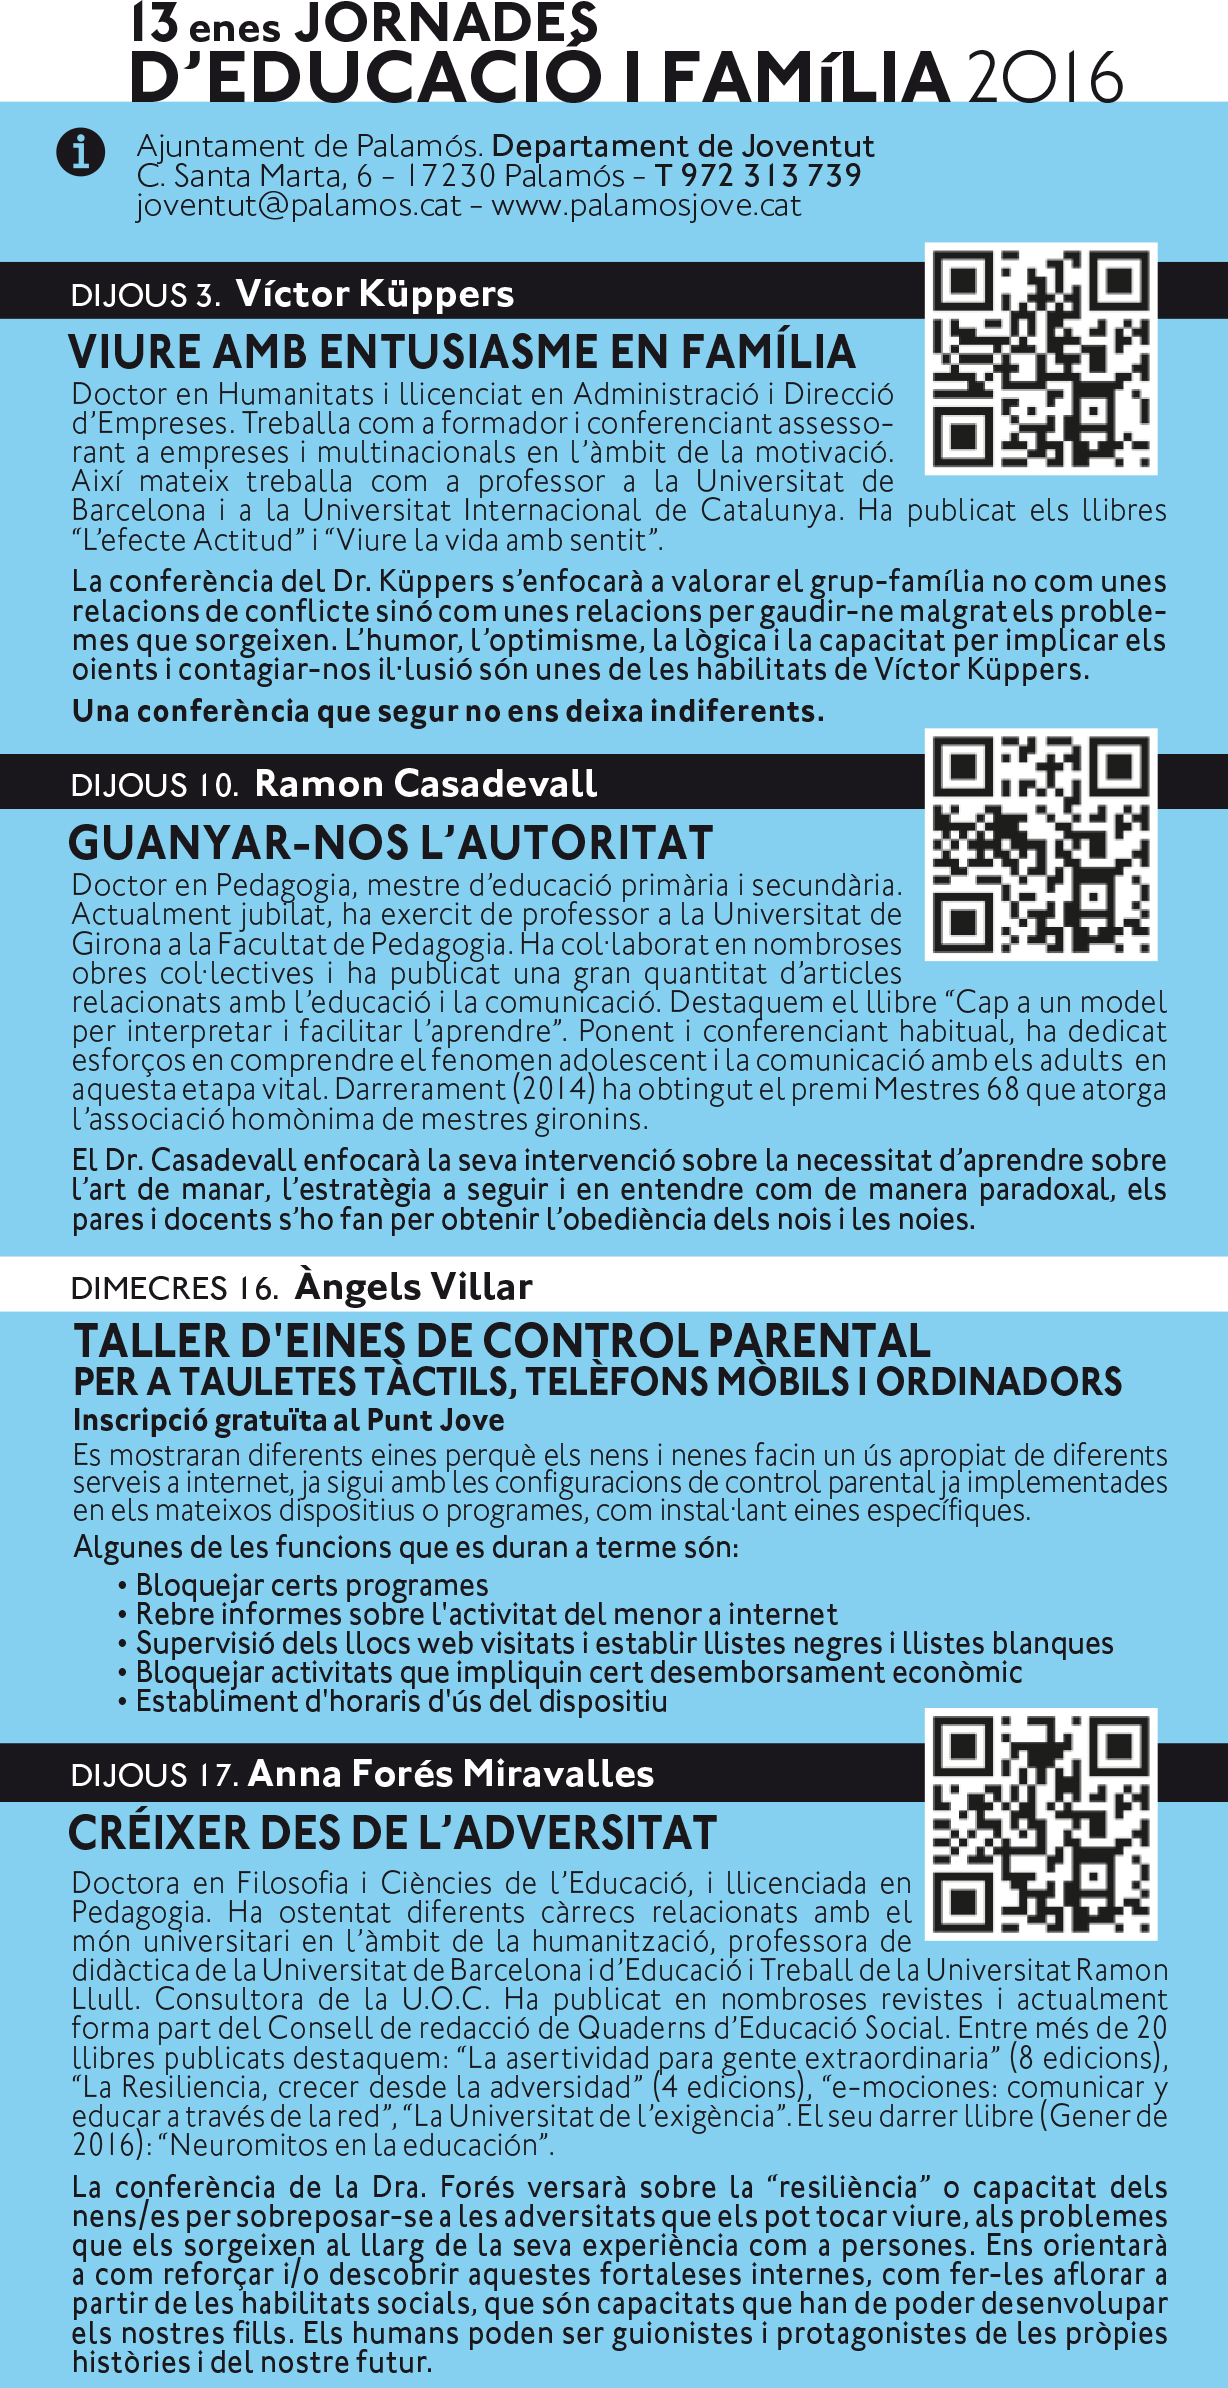 flyer_educacio_familia_16